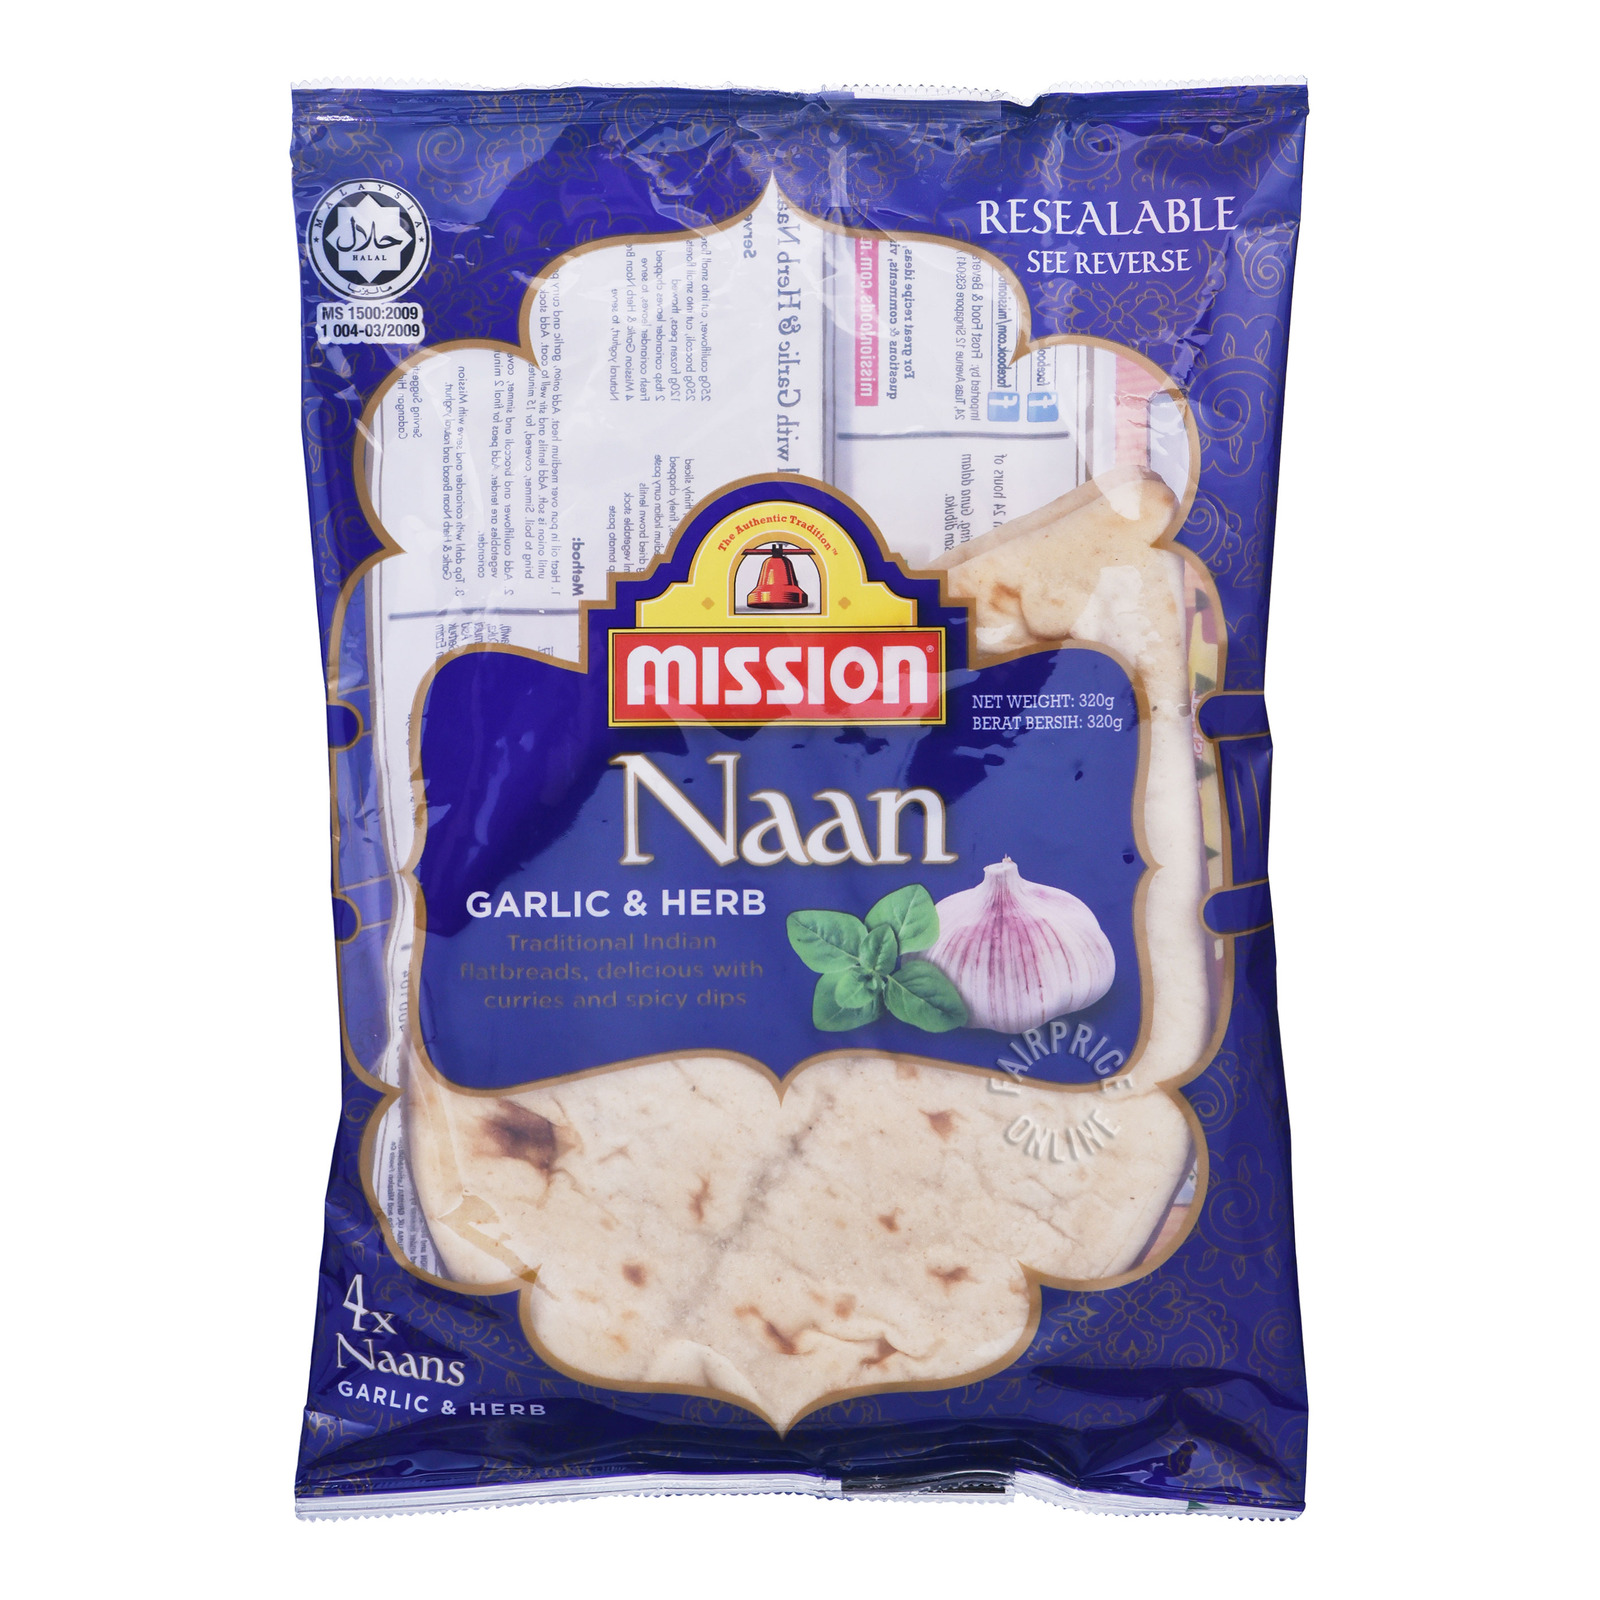 Mission Naan - Garlic & Herbs